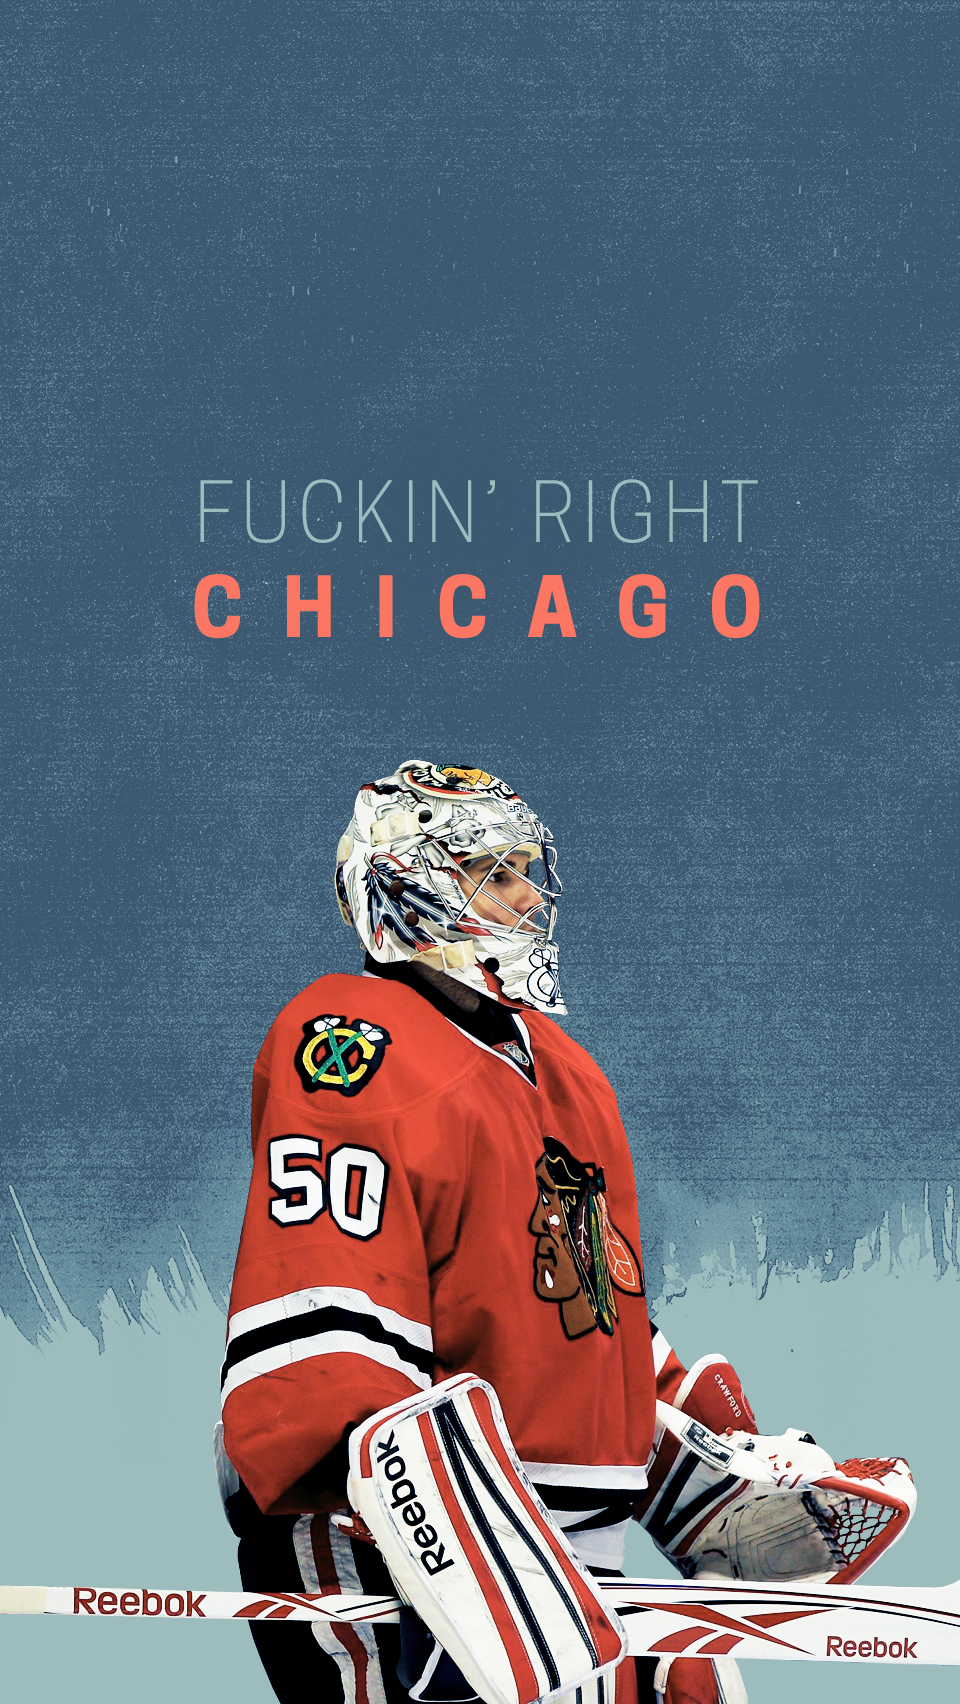 blackhawks wallpaper iphone 5 - photo #44